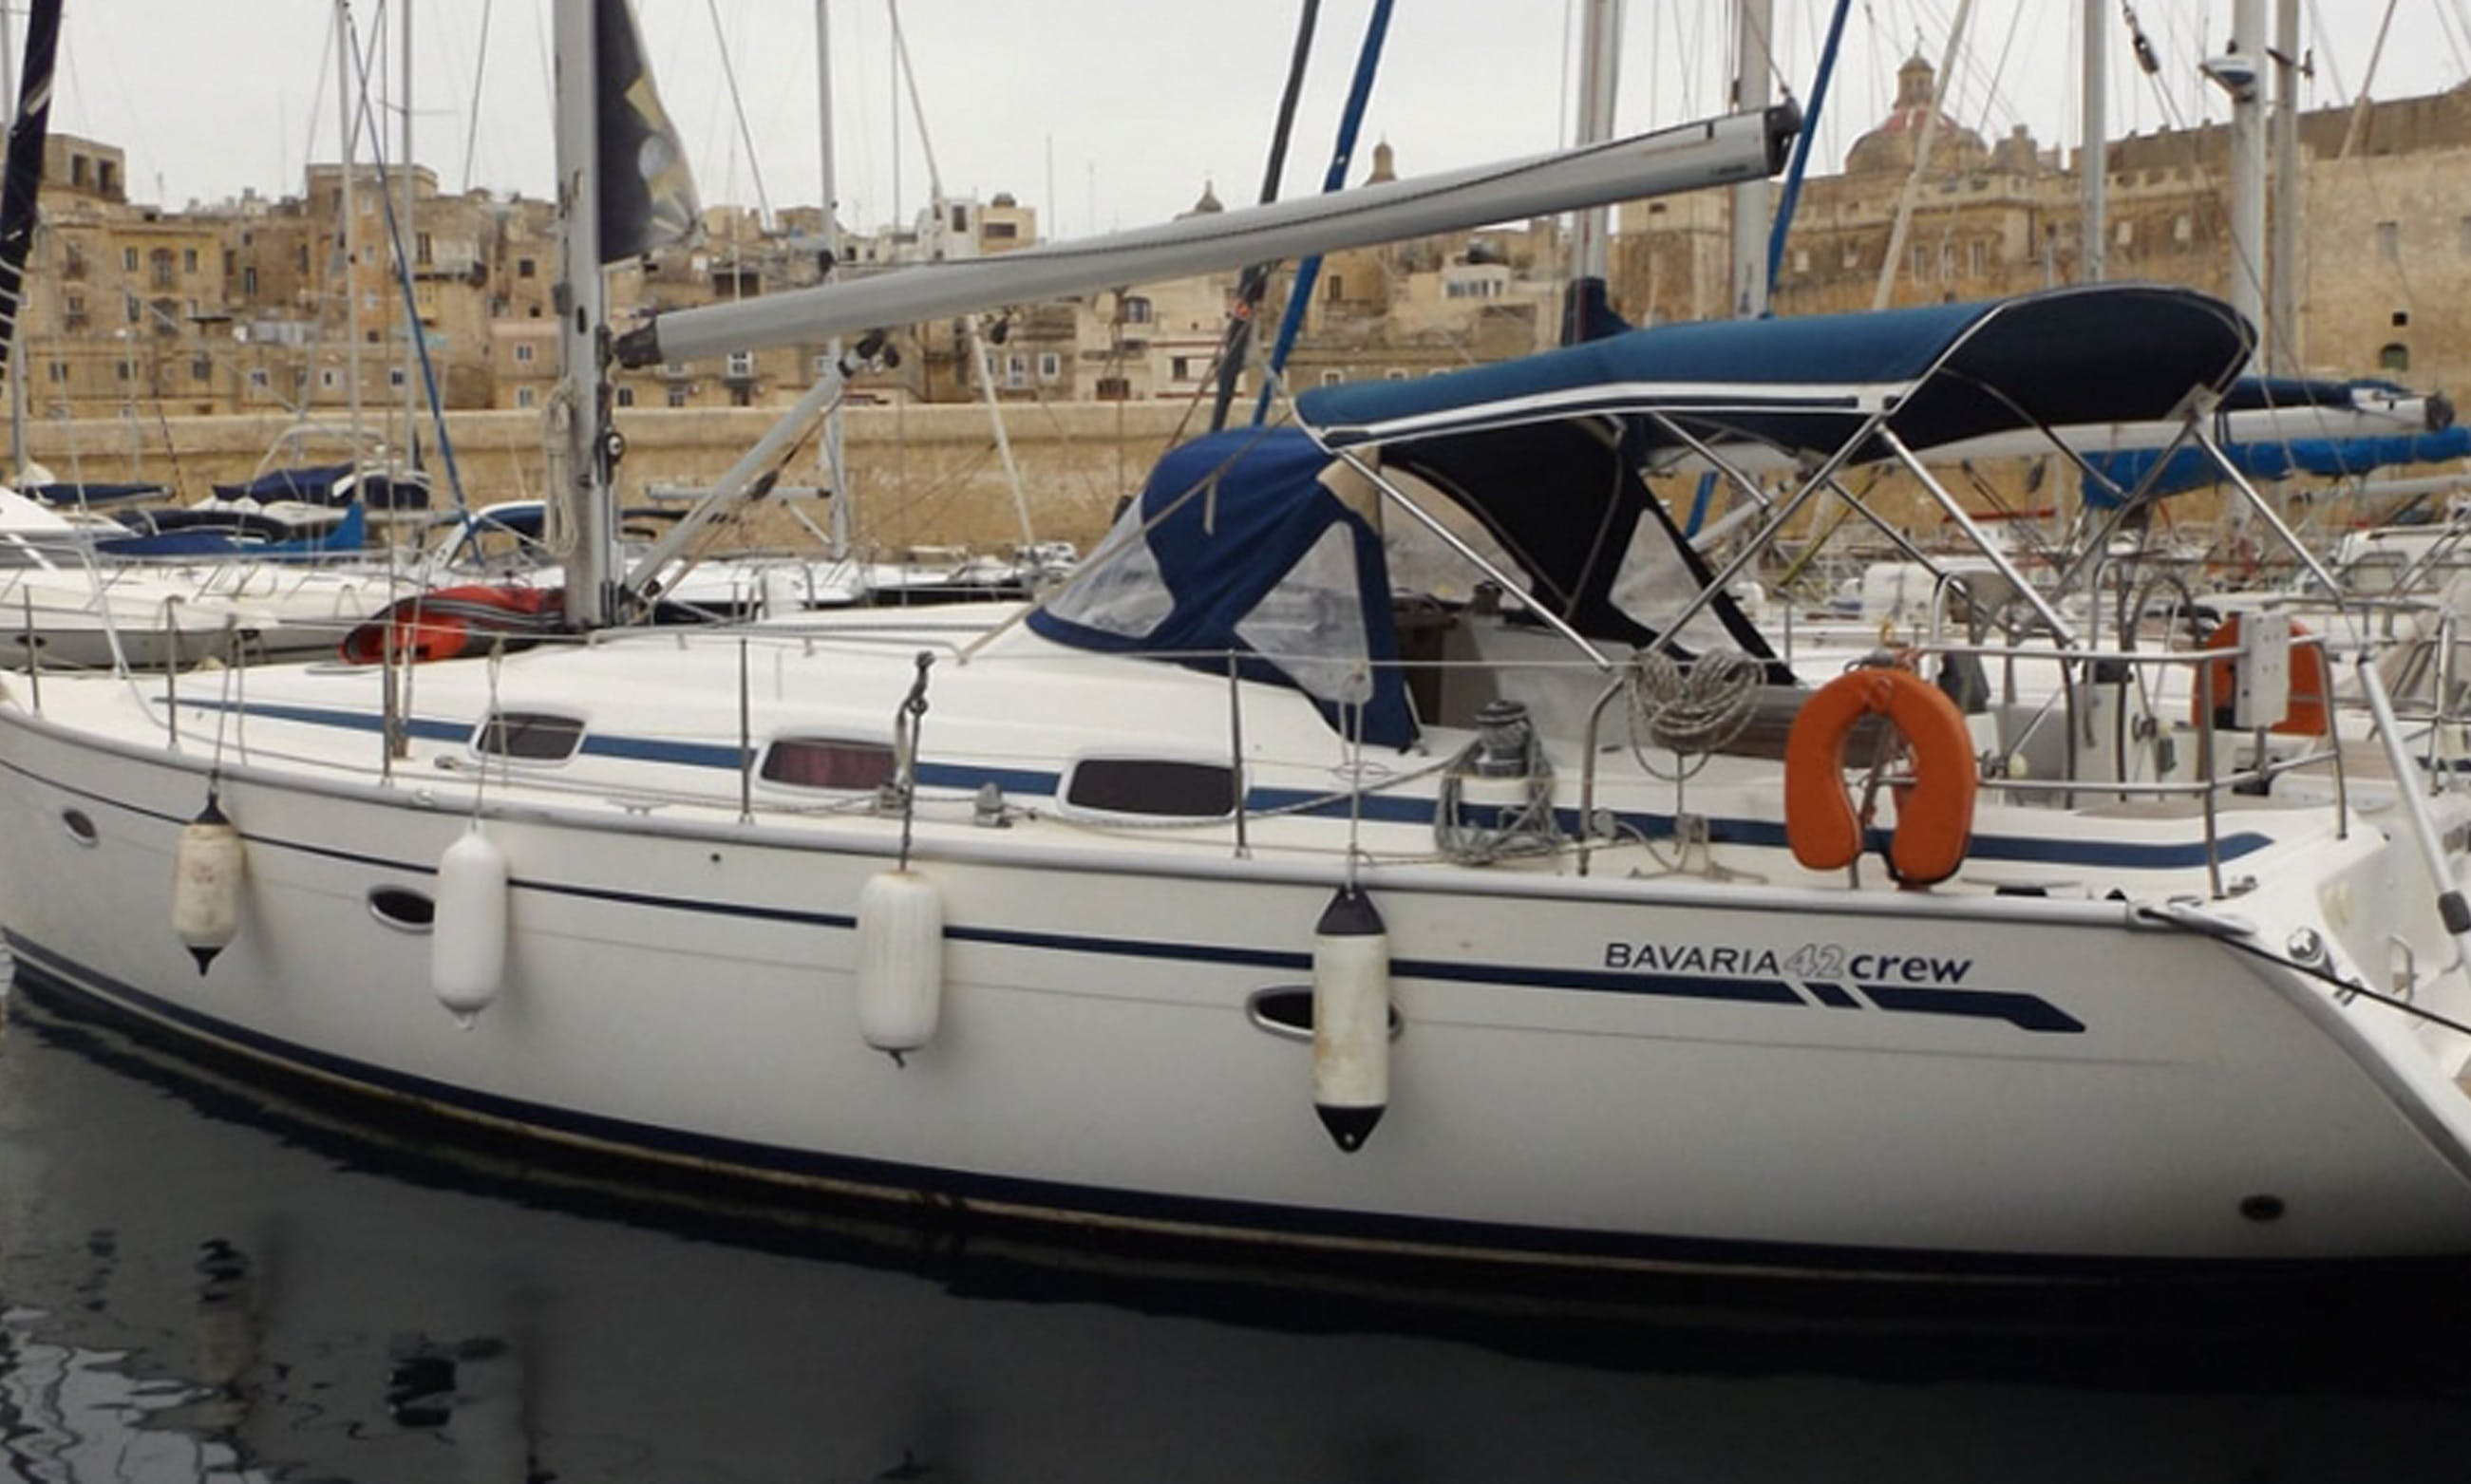 Captained Charter Aboard 42 ft Bavaria Cruiser for Up to 9 people in Pieta, Malta